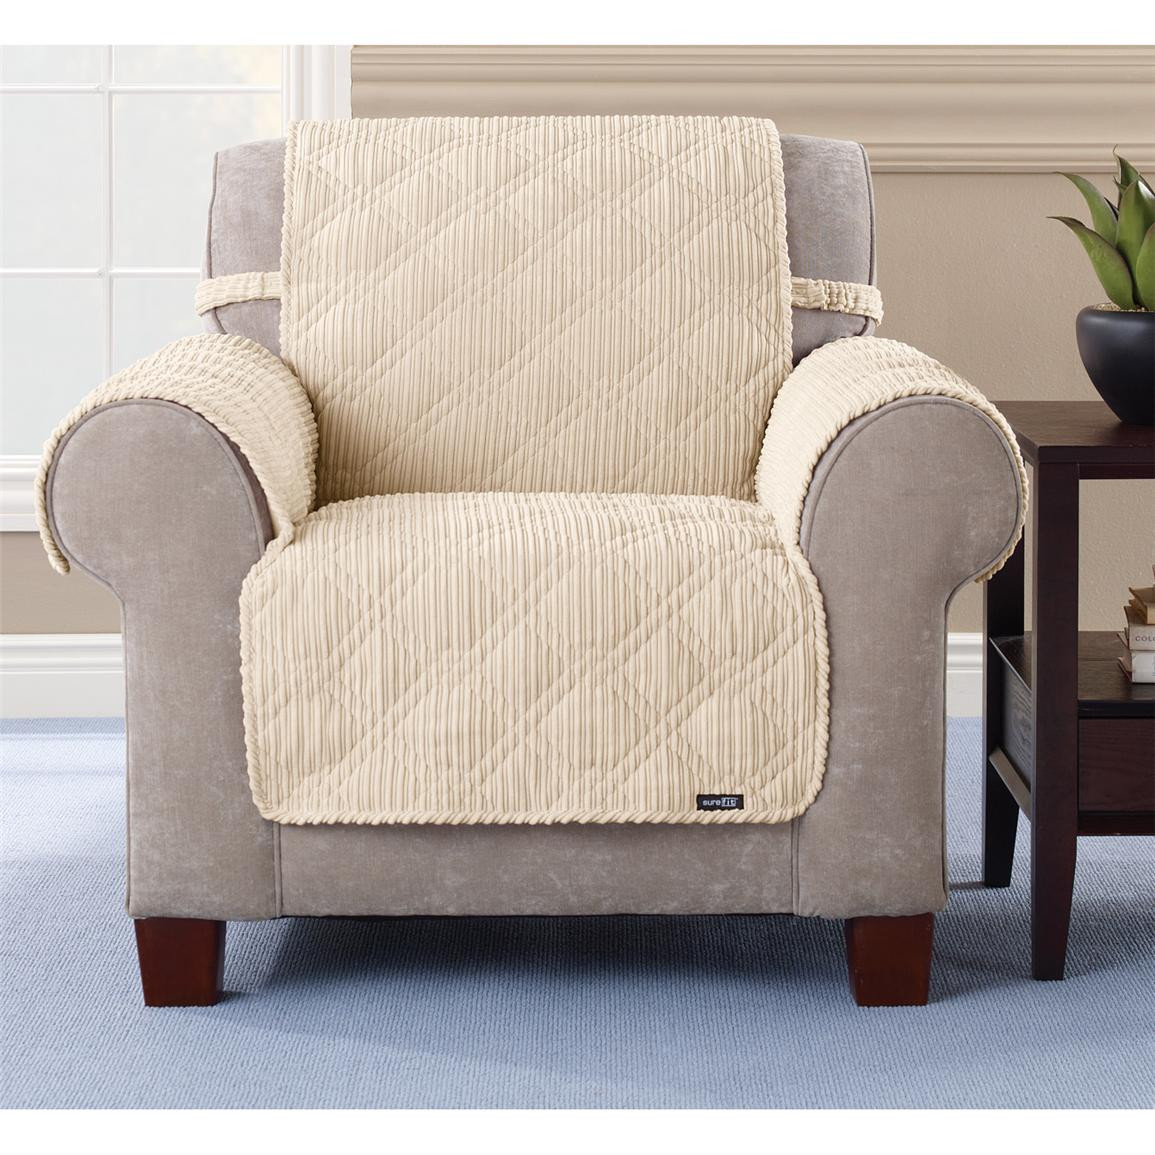 Best ideas about Surefit Chair Cover . Save or Pin Sure Fit Quilted Corduroy Chair Pet Cover Now.